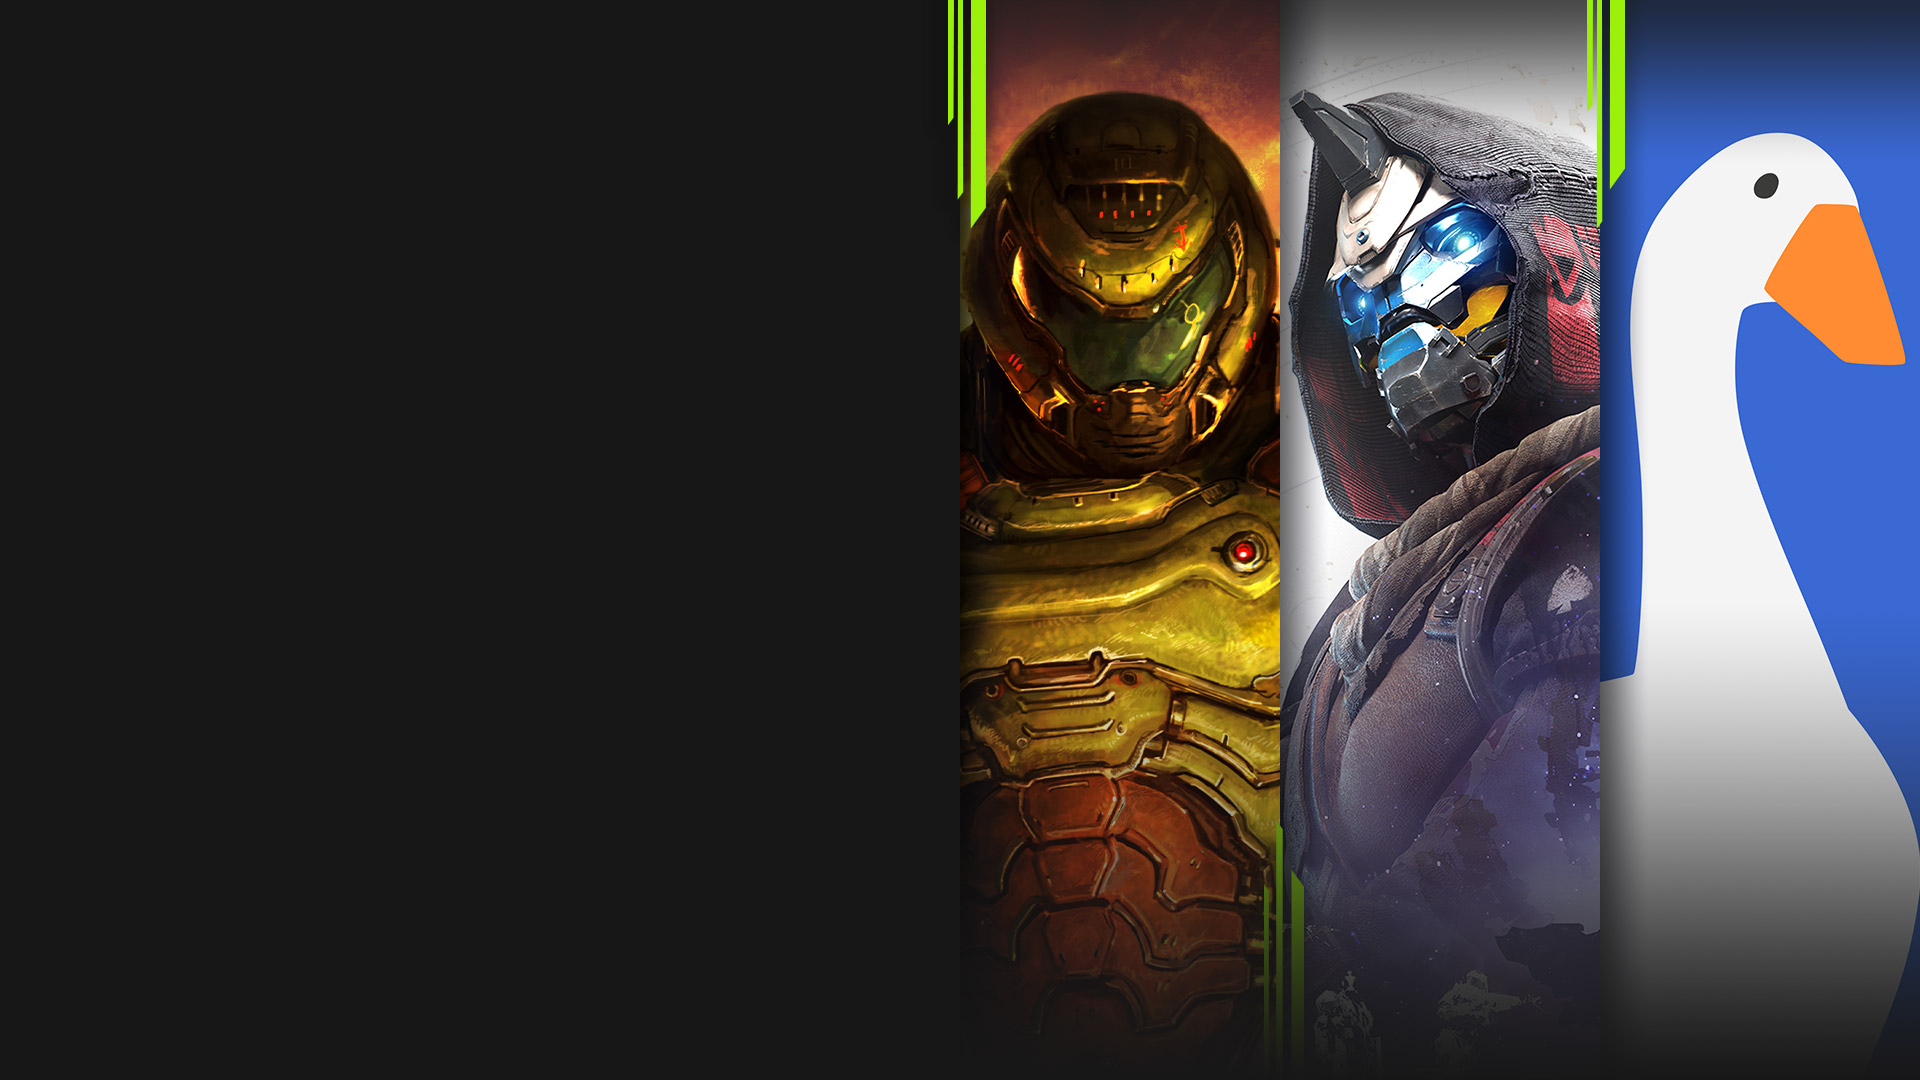 Game art from multiple games available with Xbox Game Pass including Doom Eternal, Destiny 2, and Untitled Goose Game.